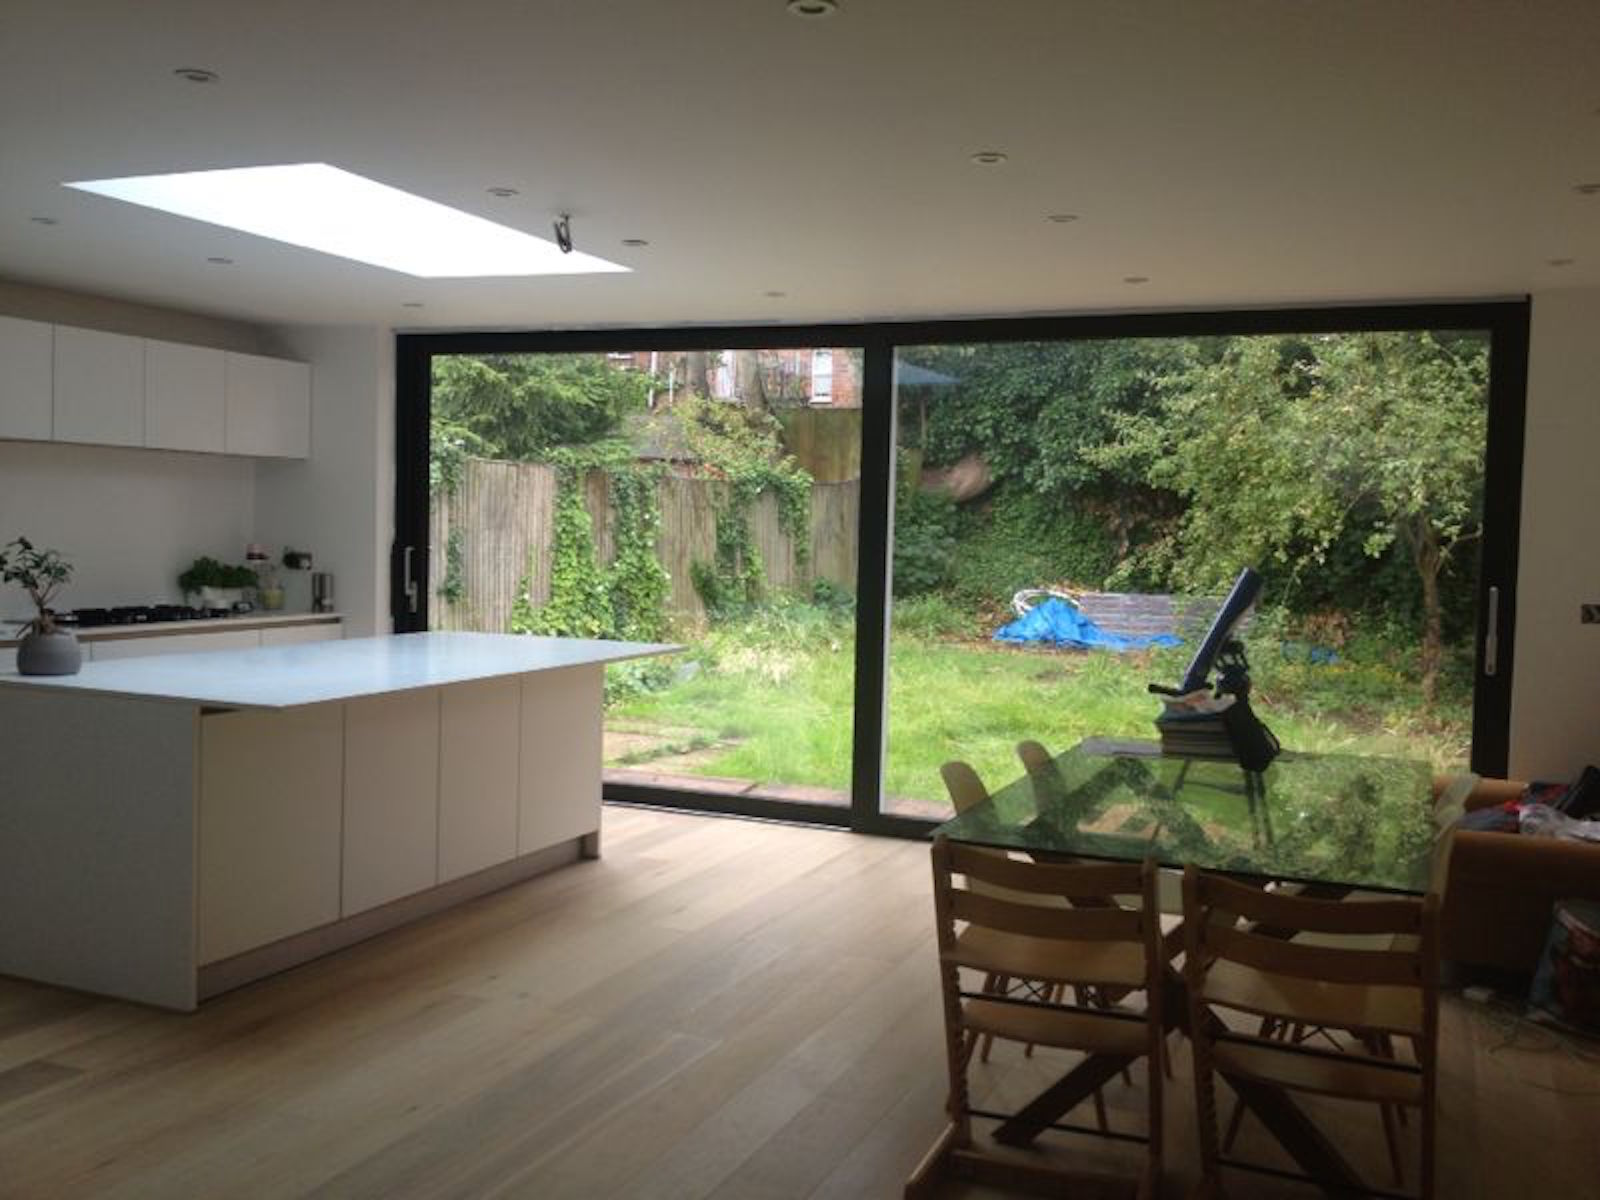 Schuco Ass70 Hi Lift Slide Doors Installed By Dwl